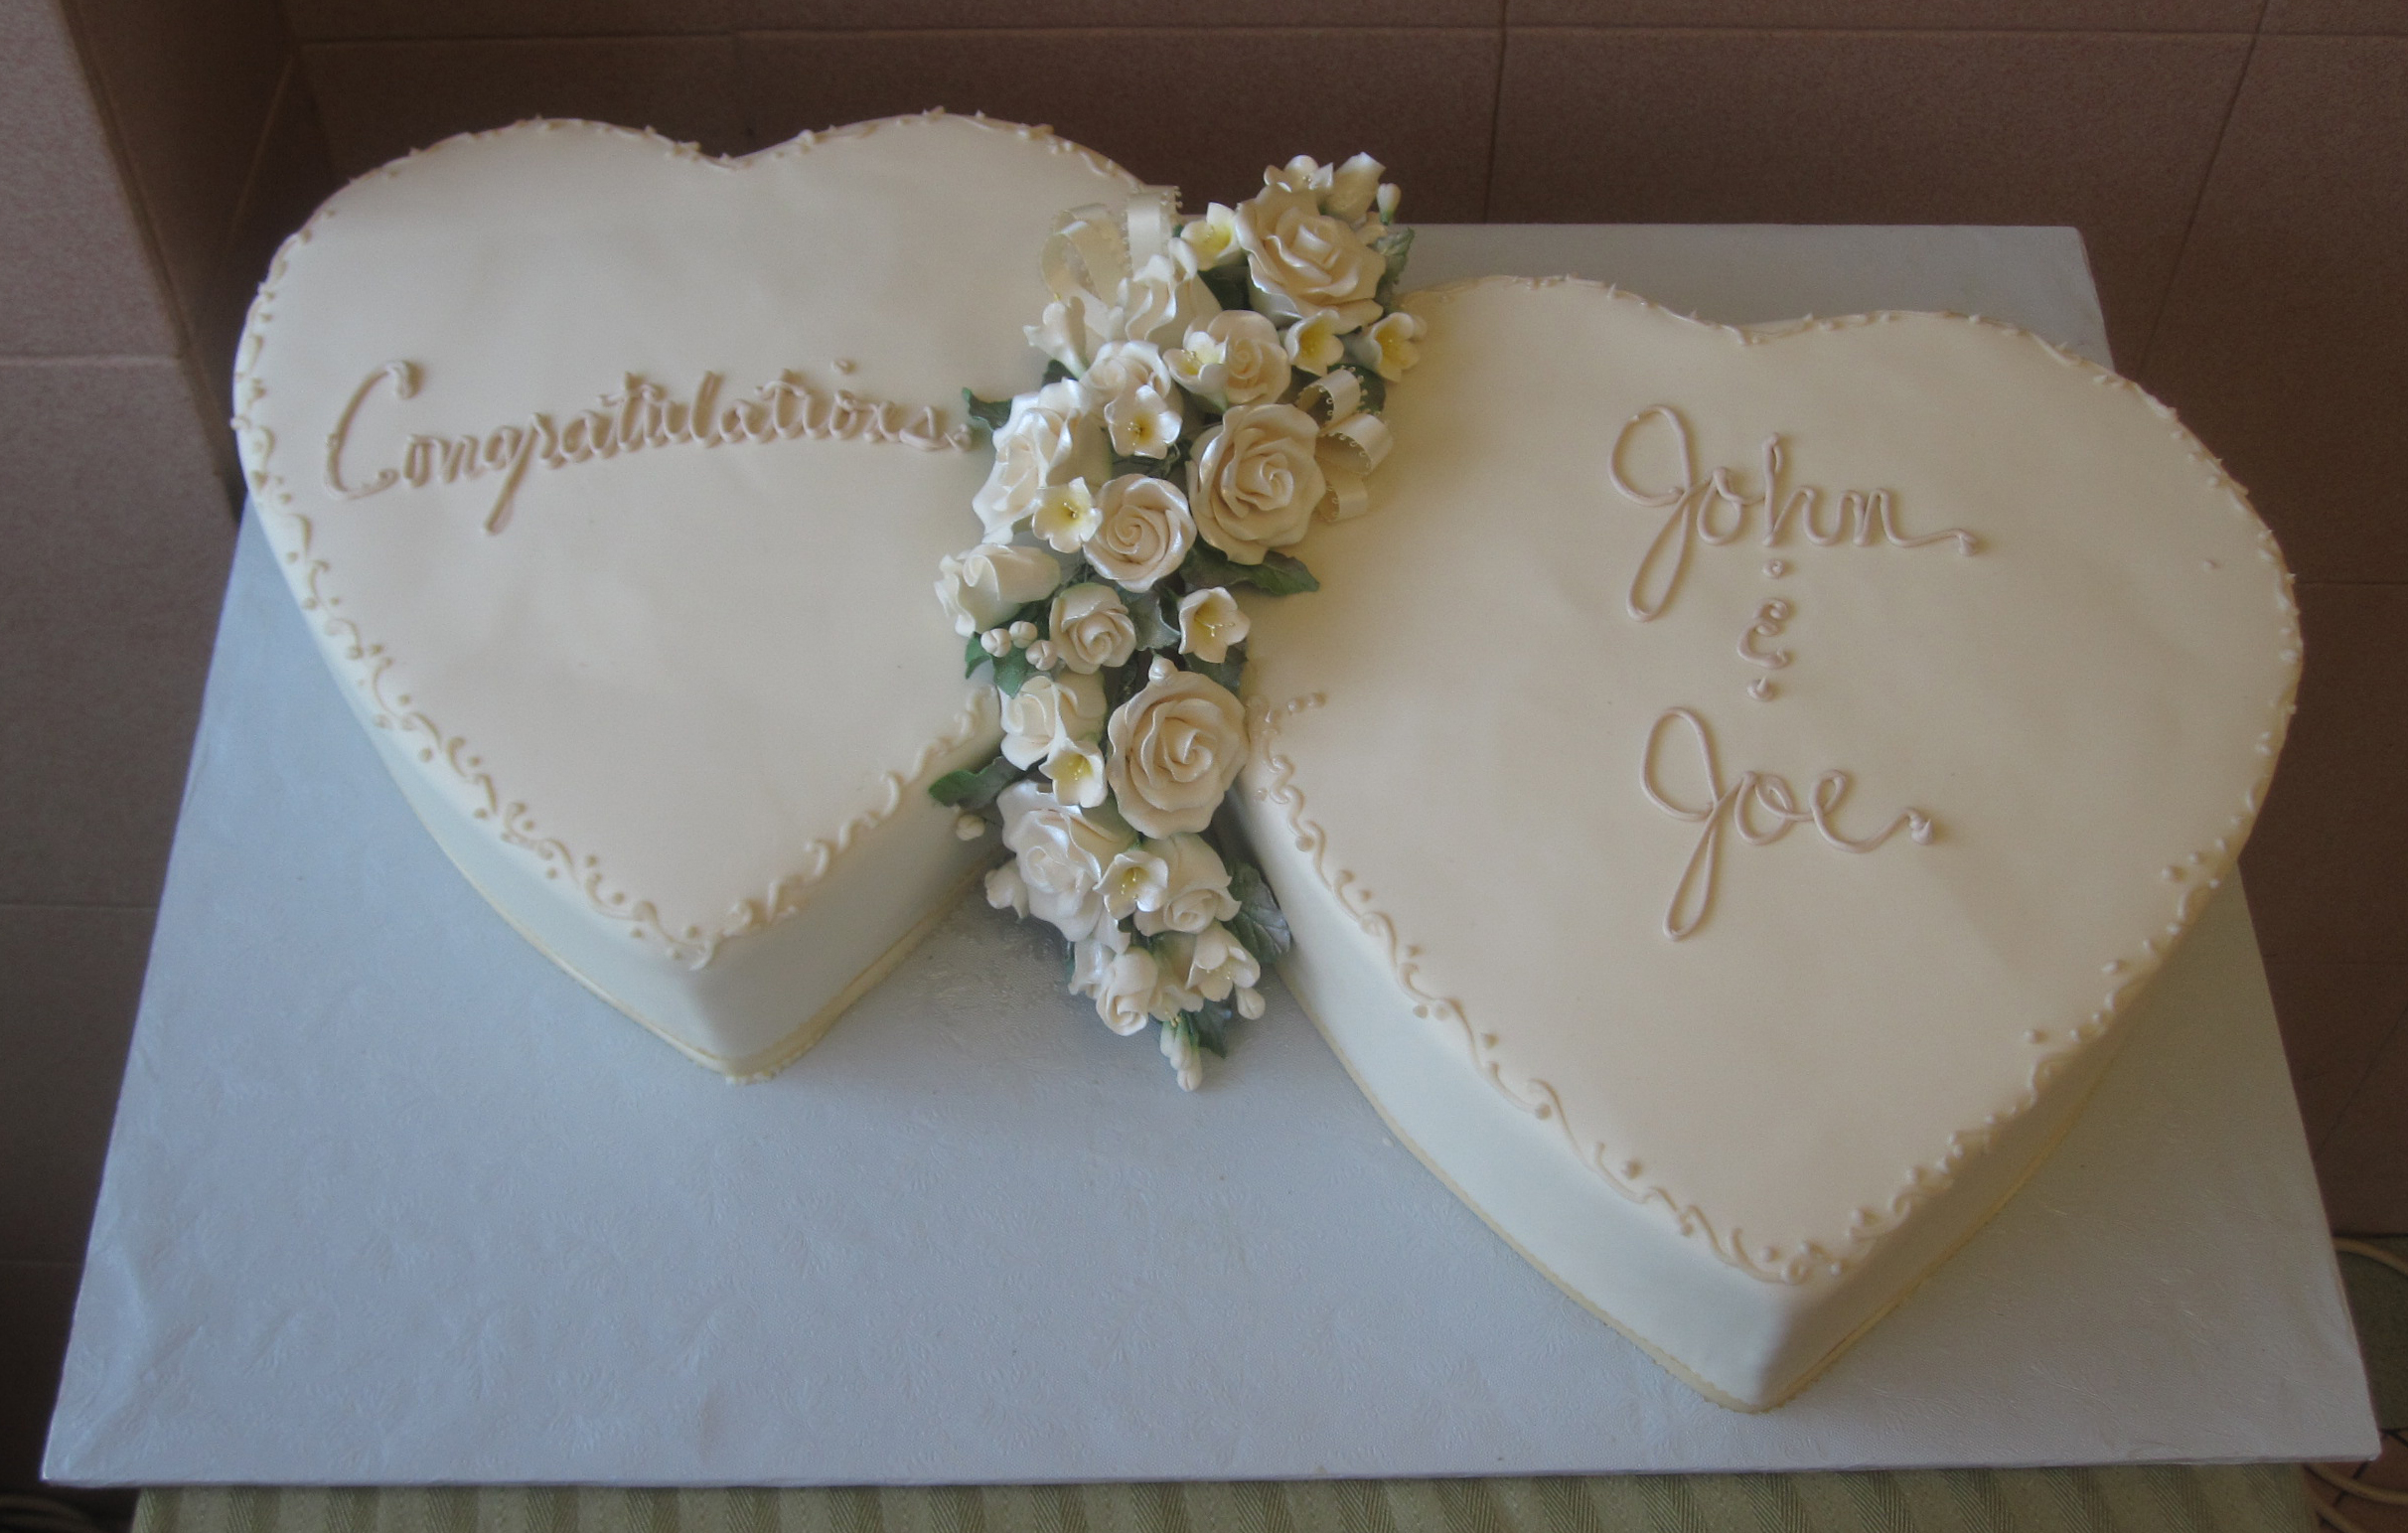 Joined Hearts in Ivory Rolled Fondant Gum Paste Floral Bouquet